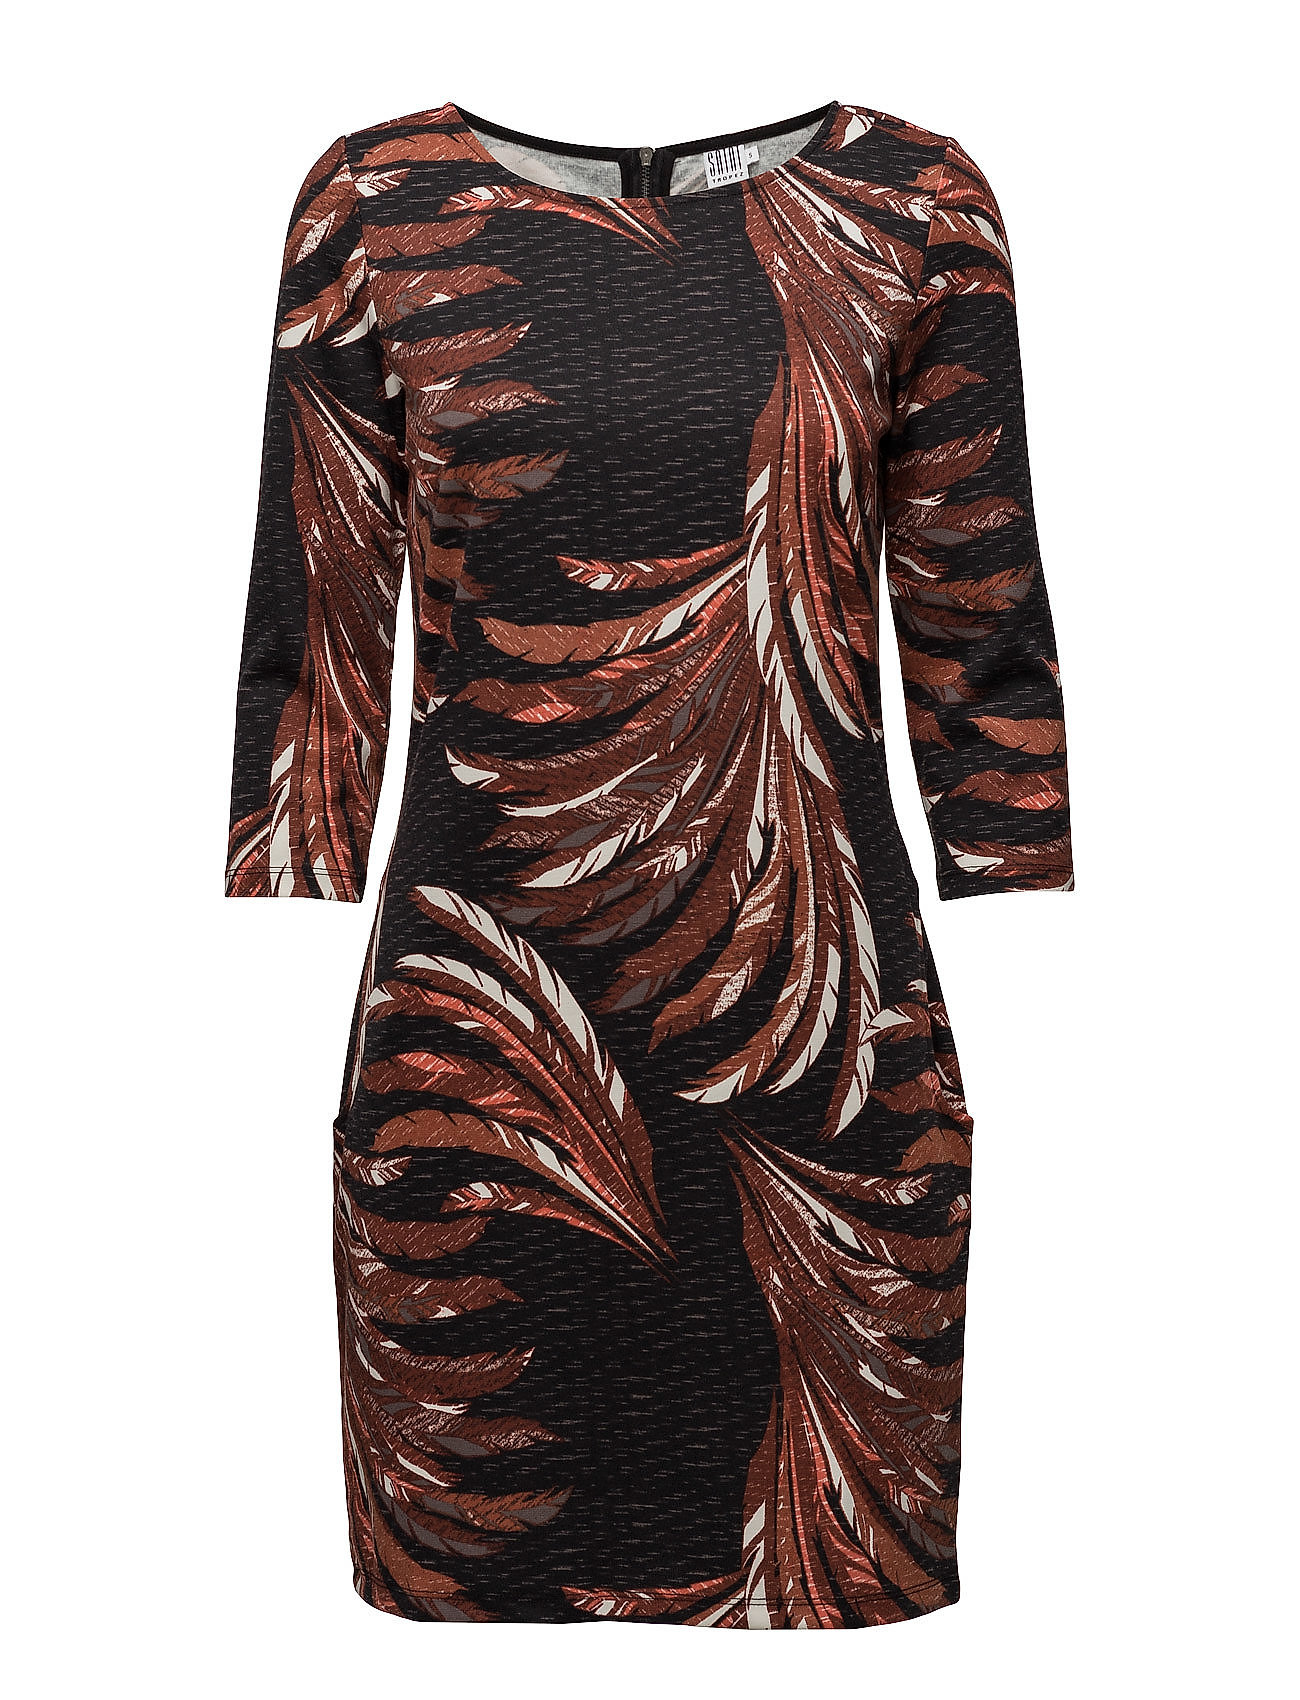 Feather Printed Jersey Dress Saint Tropez Kjoler til Kvinder i Sort